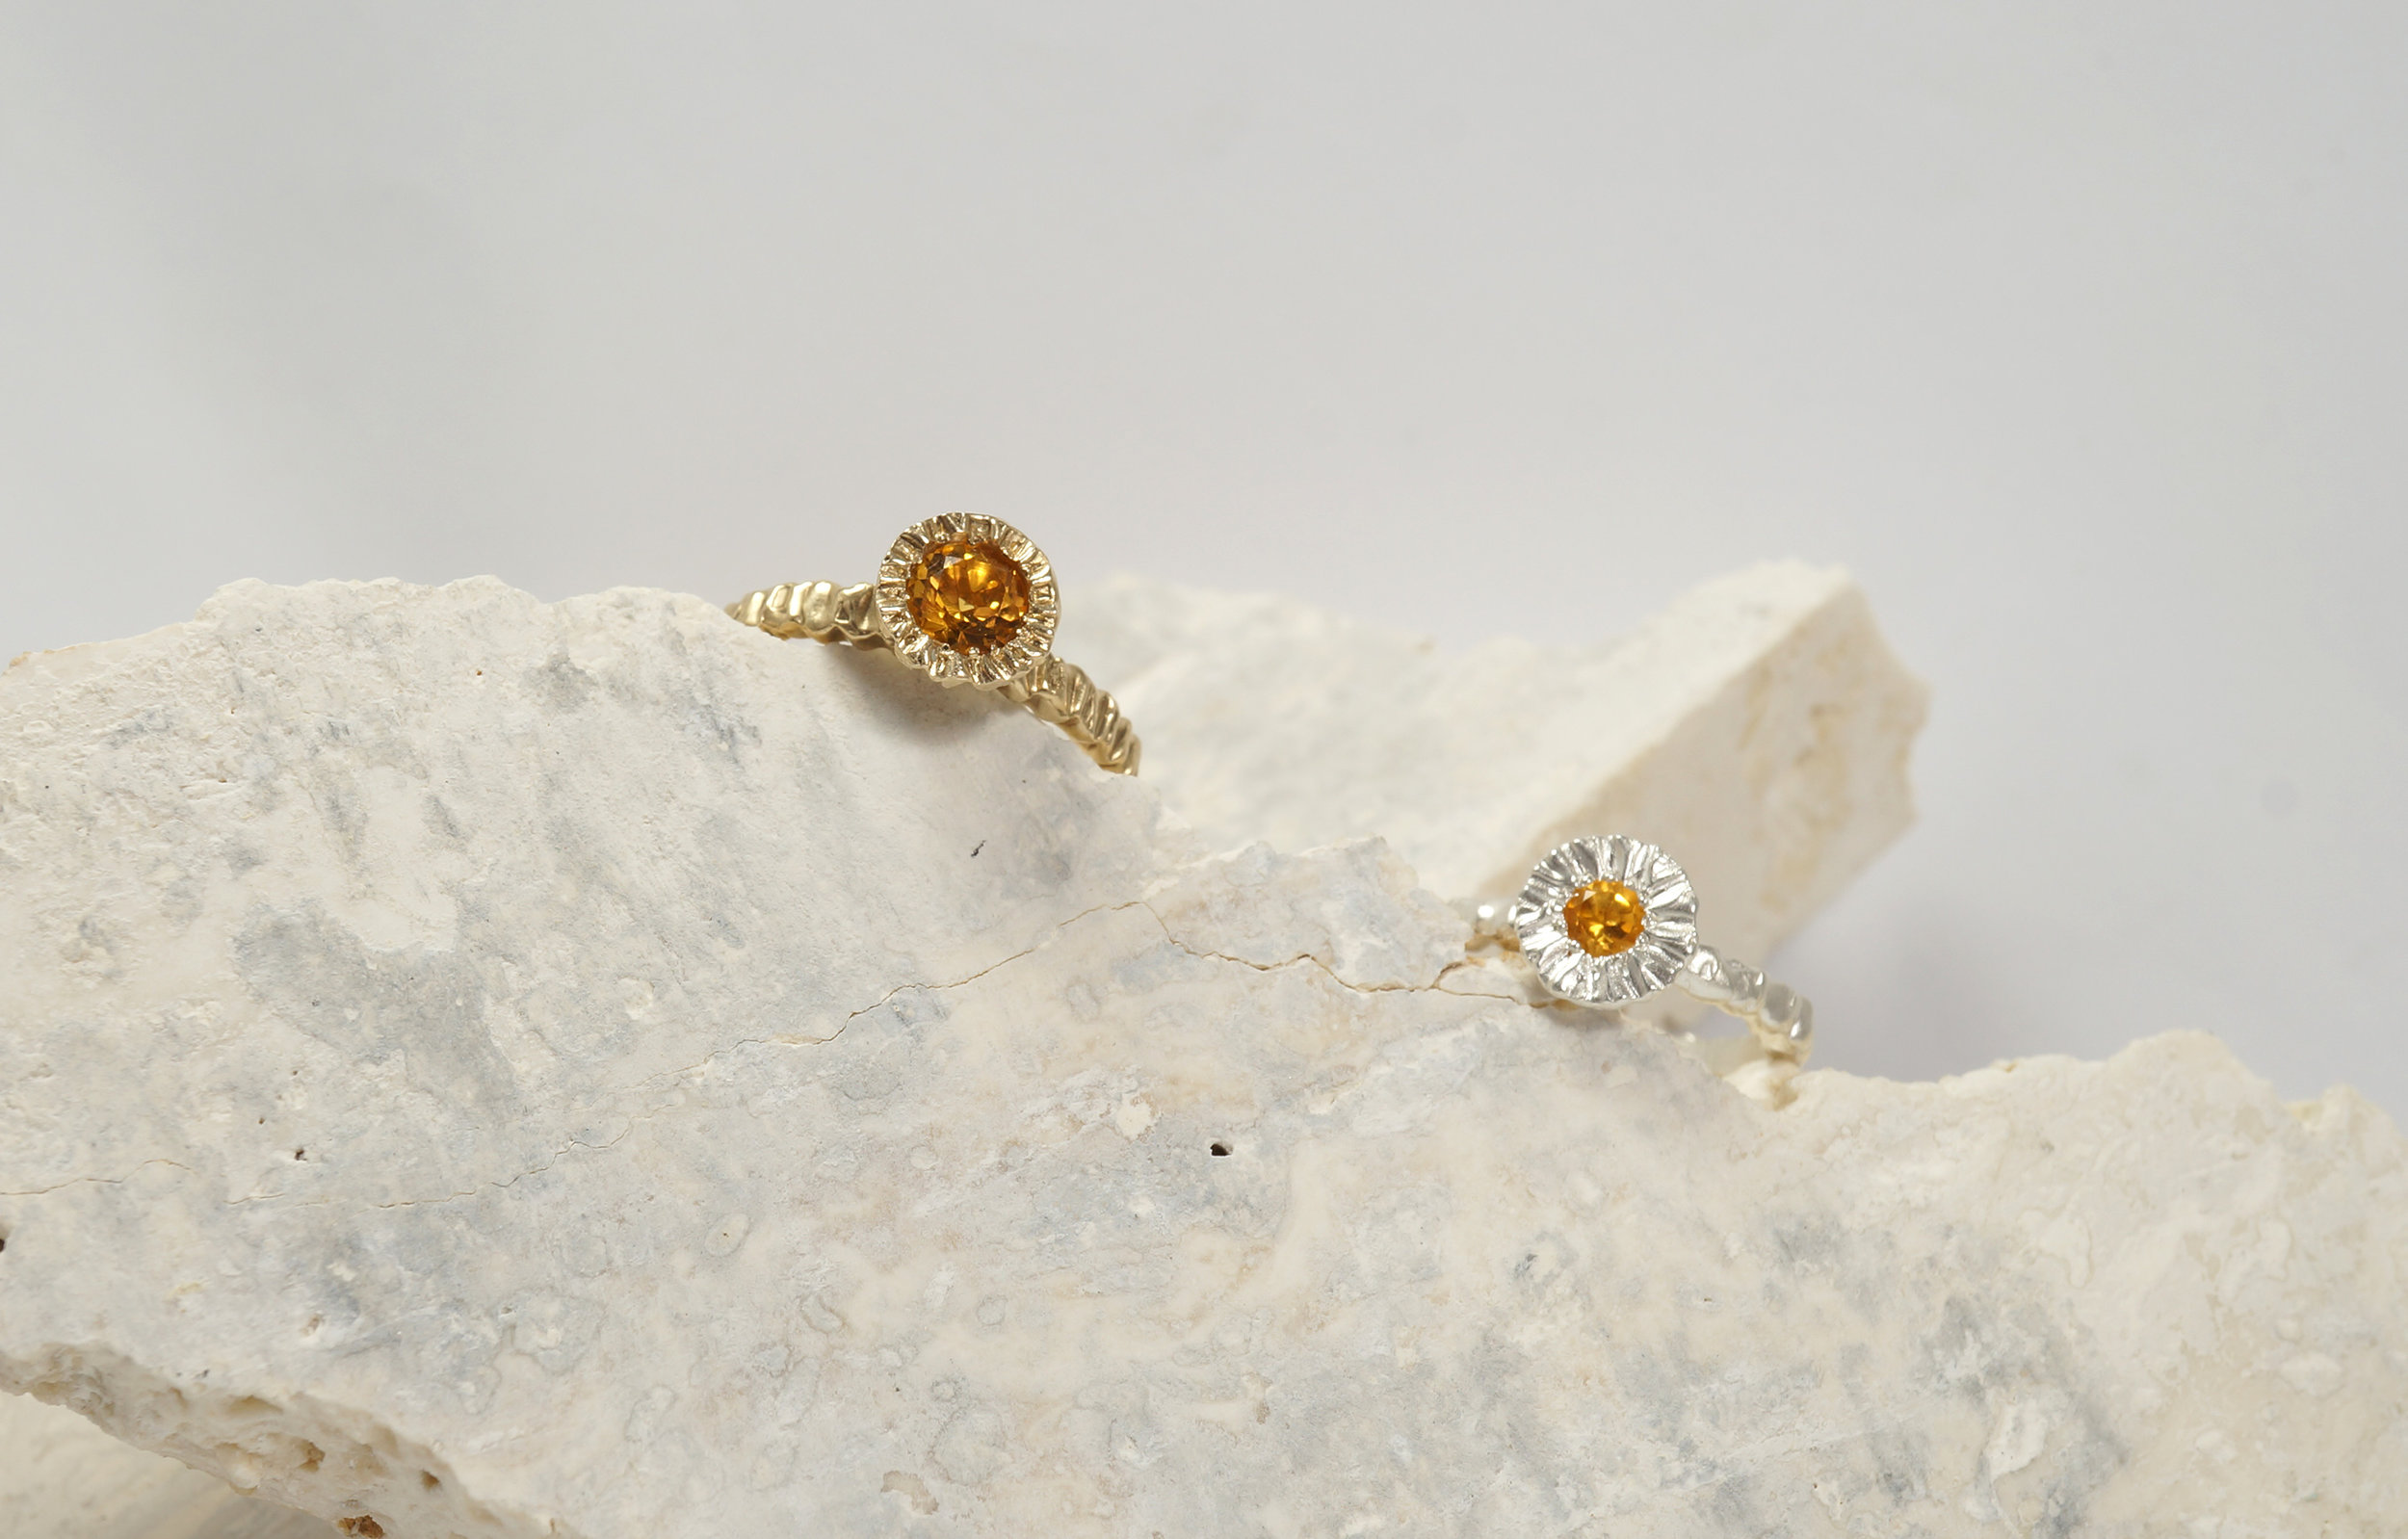 citrine-teeth-silver-gold.jpg